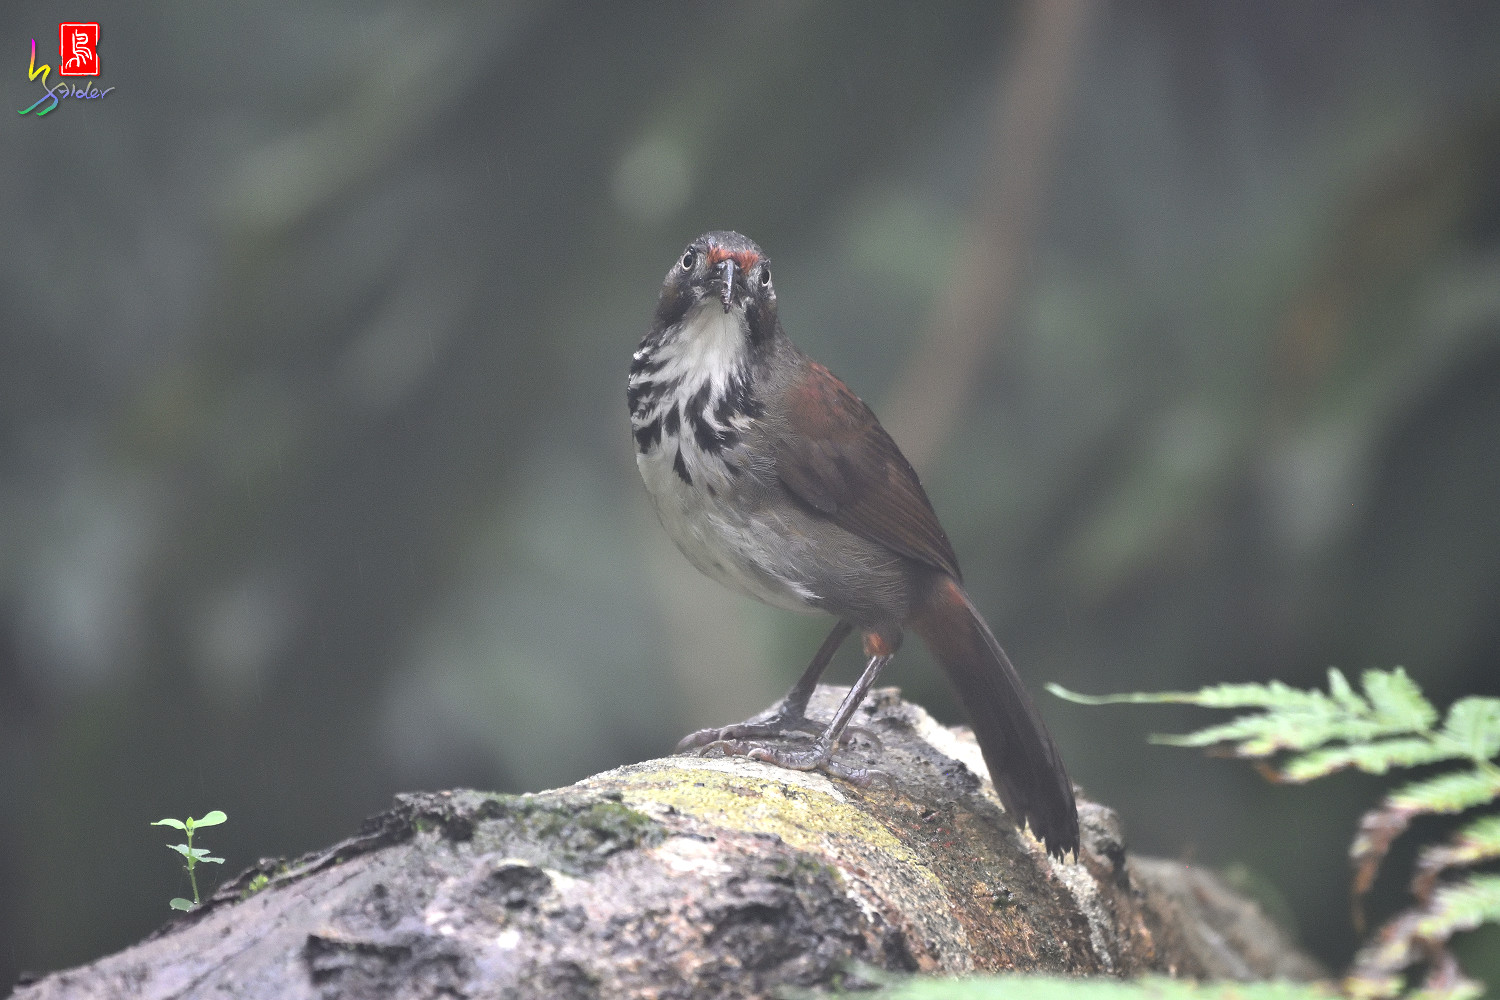 Rusty-cheeked_Scimitar-babbler_4354